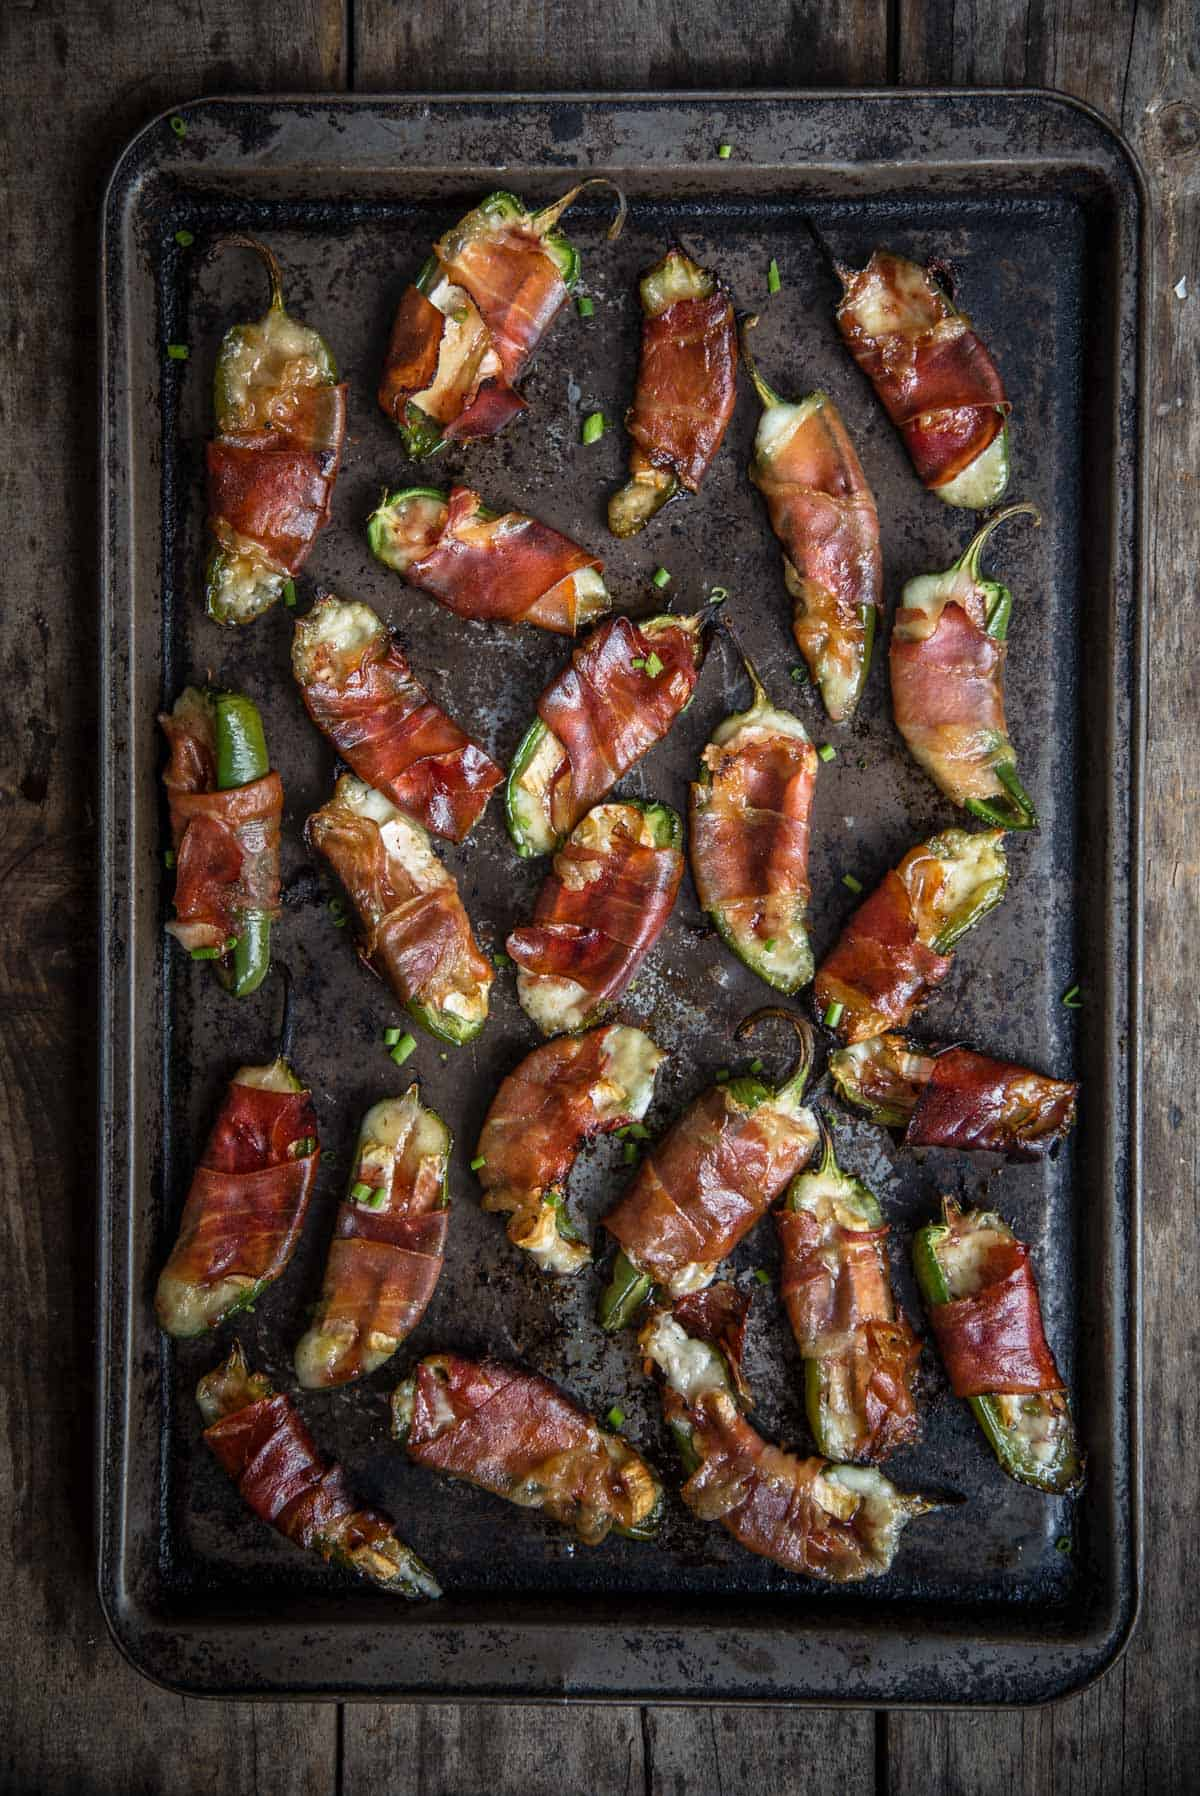 Grilled Jalapeno poppers on a sheet pan